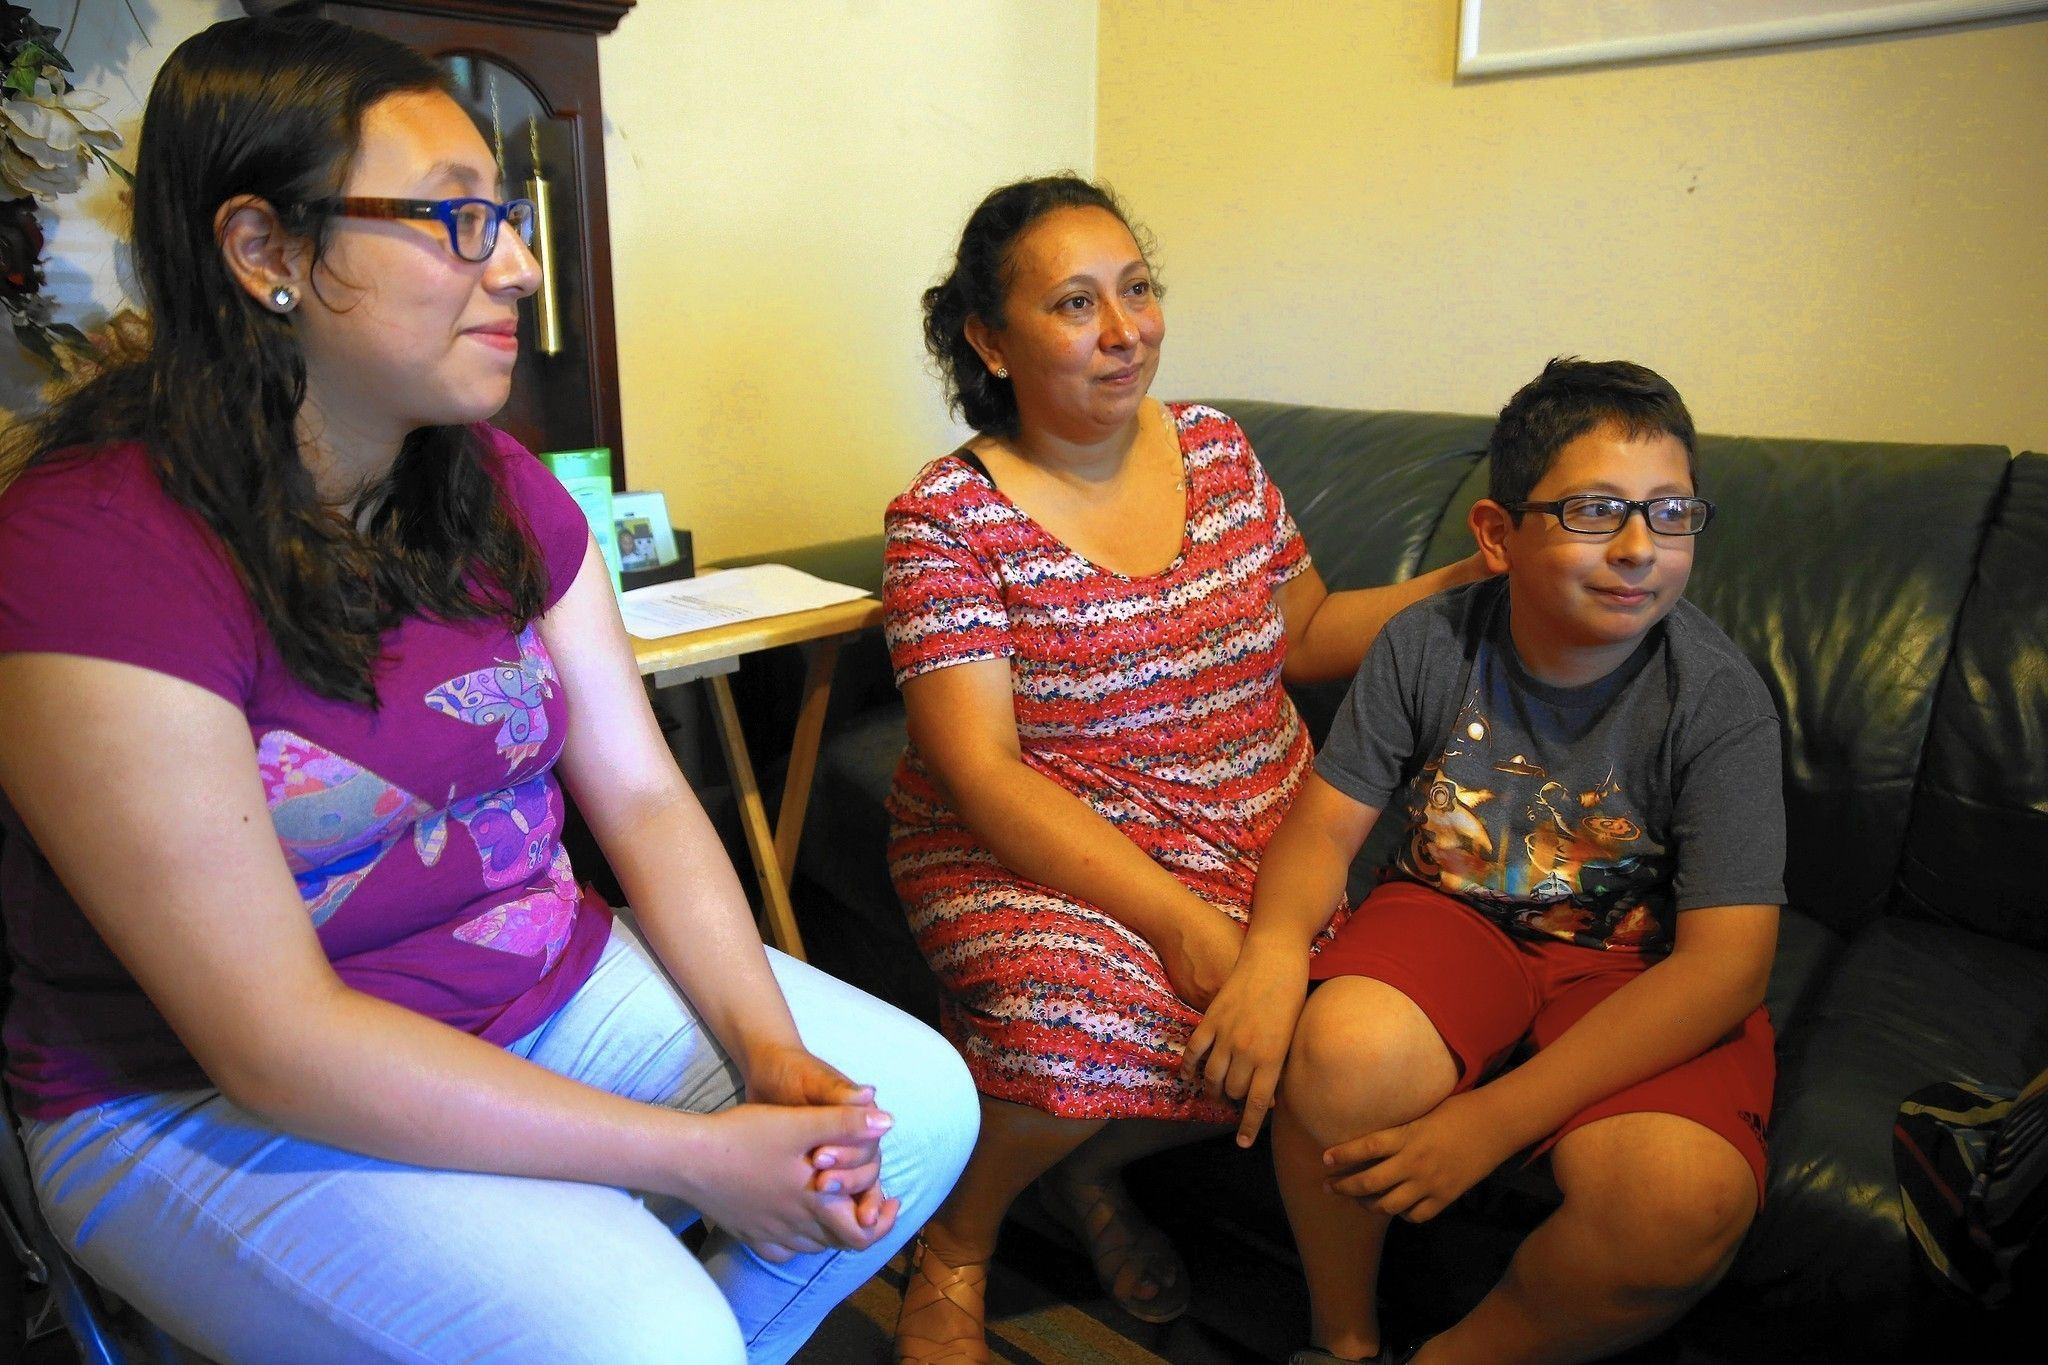 #Autism advocates hope new budget will restore services - http://www.chicagotribune.com/news/ct-illinois-budget-autism-funding-met-20160705-story.html #livingautismdaybyday #support